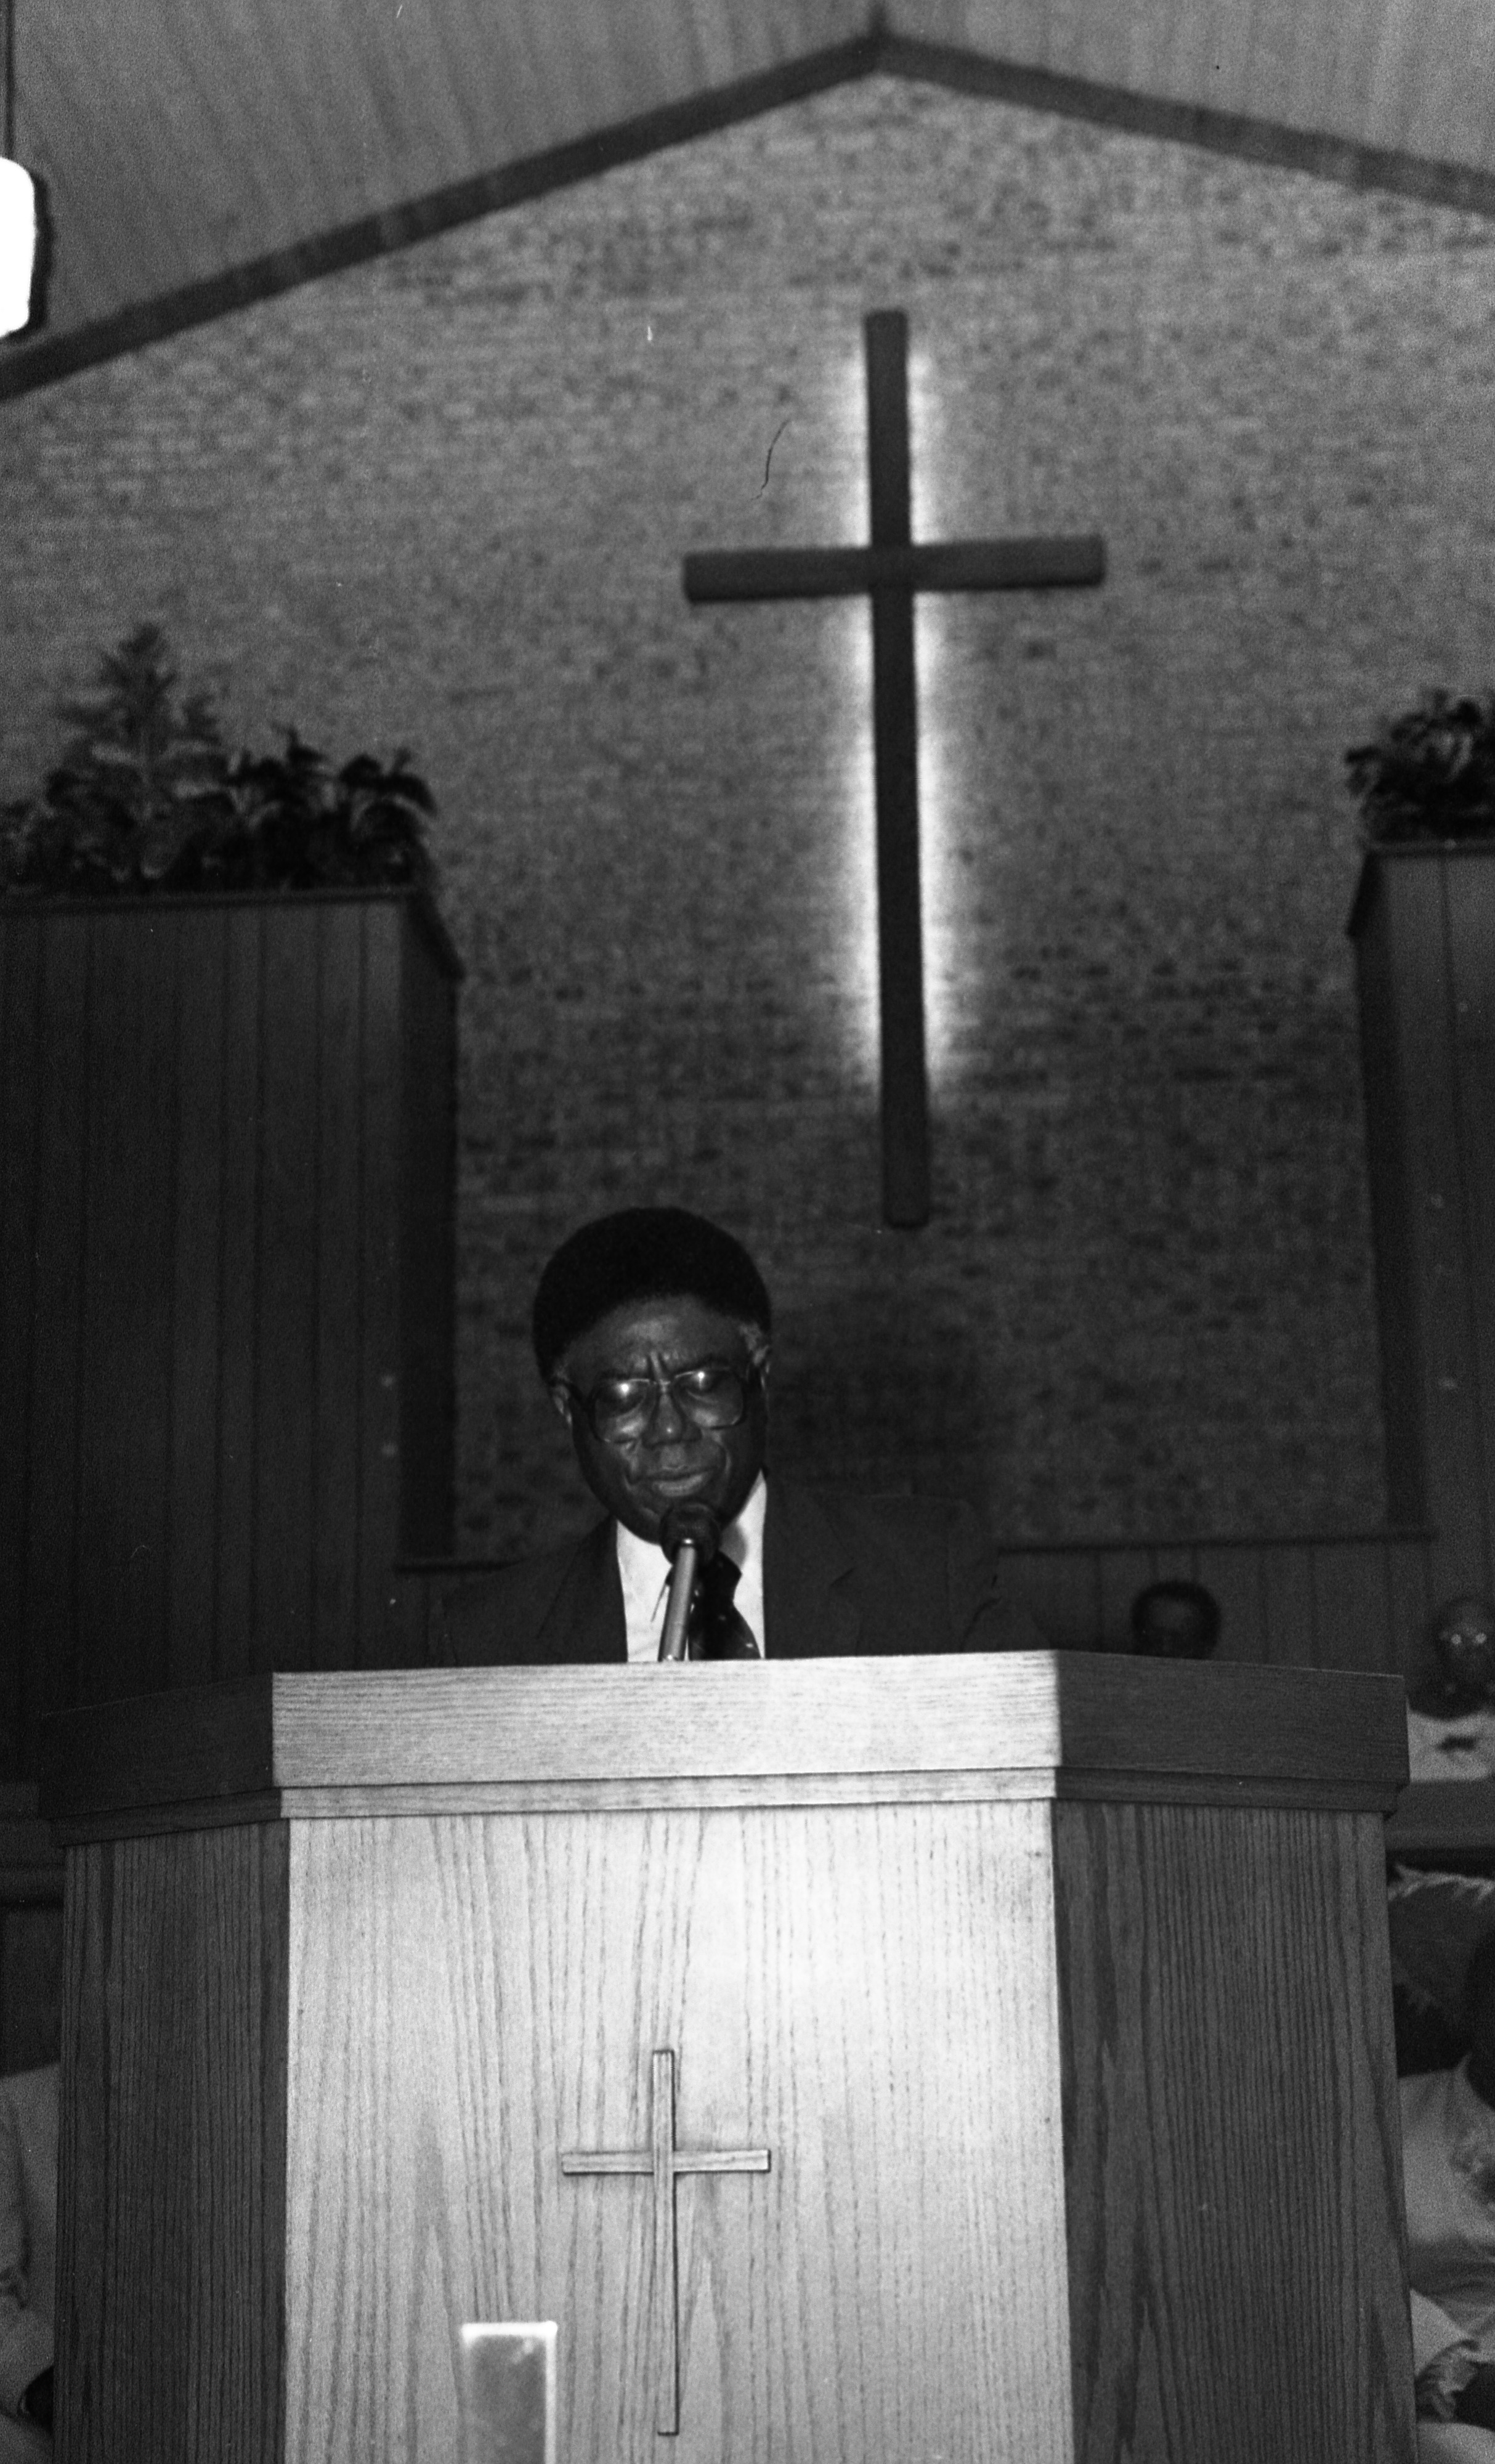 Rev. Booker T. Hopkins, Pastor of Second Baptist Church of Ypsilanti, July 1987 image